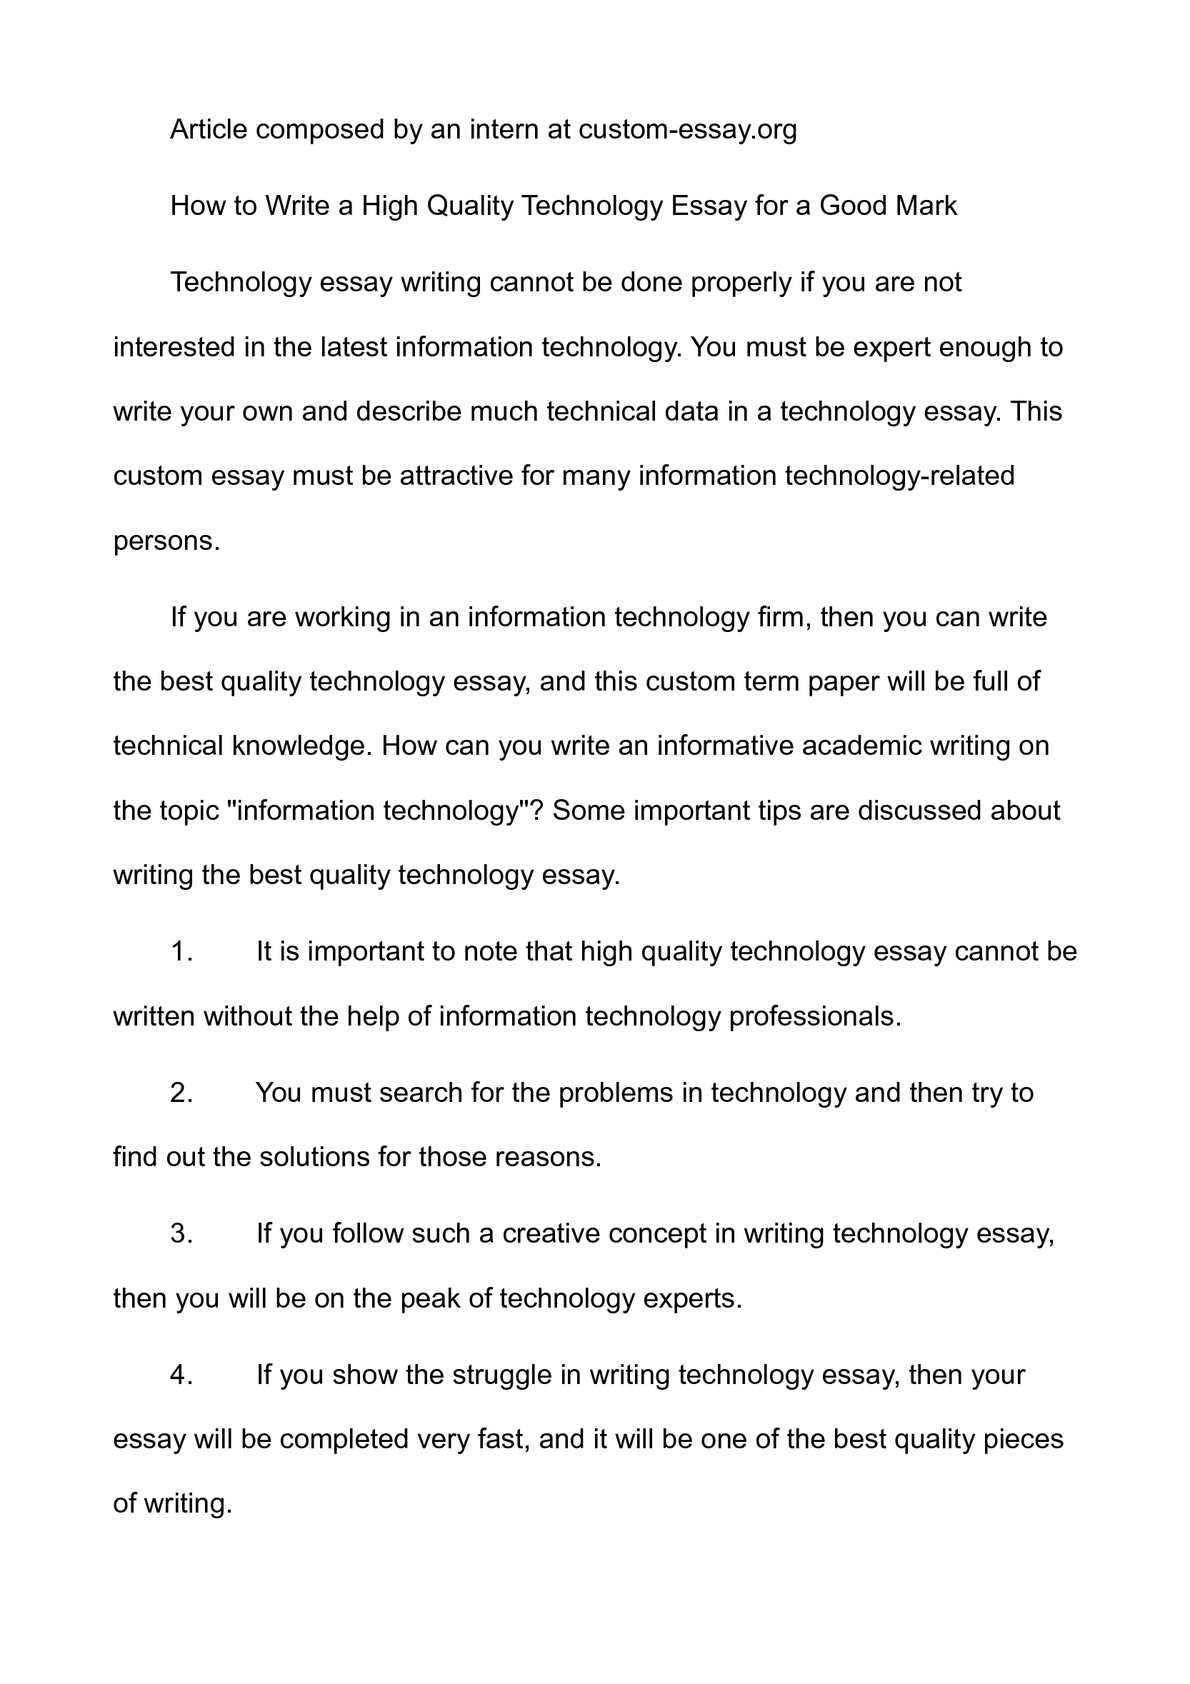 001 P1 Technology Essay Top Science And Questions Florida Institute Of Prompts Full